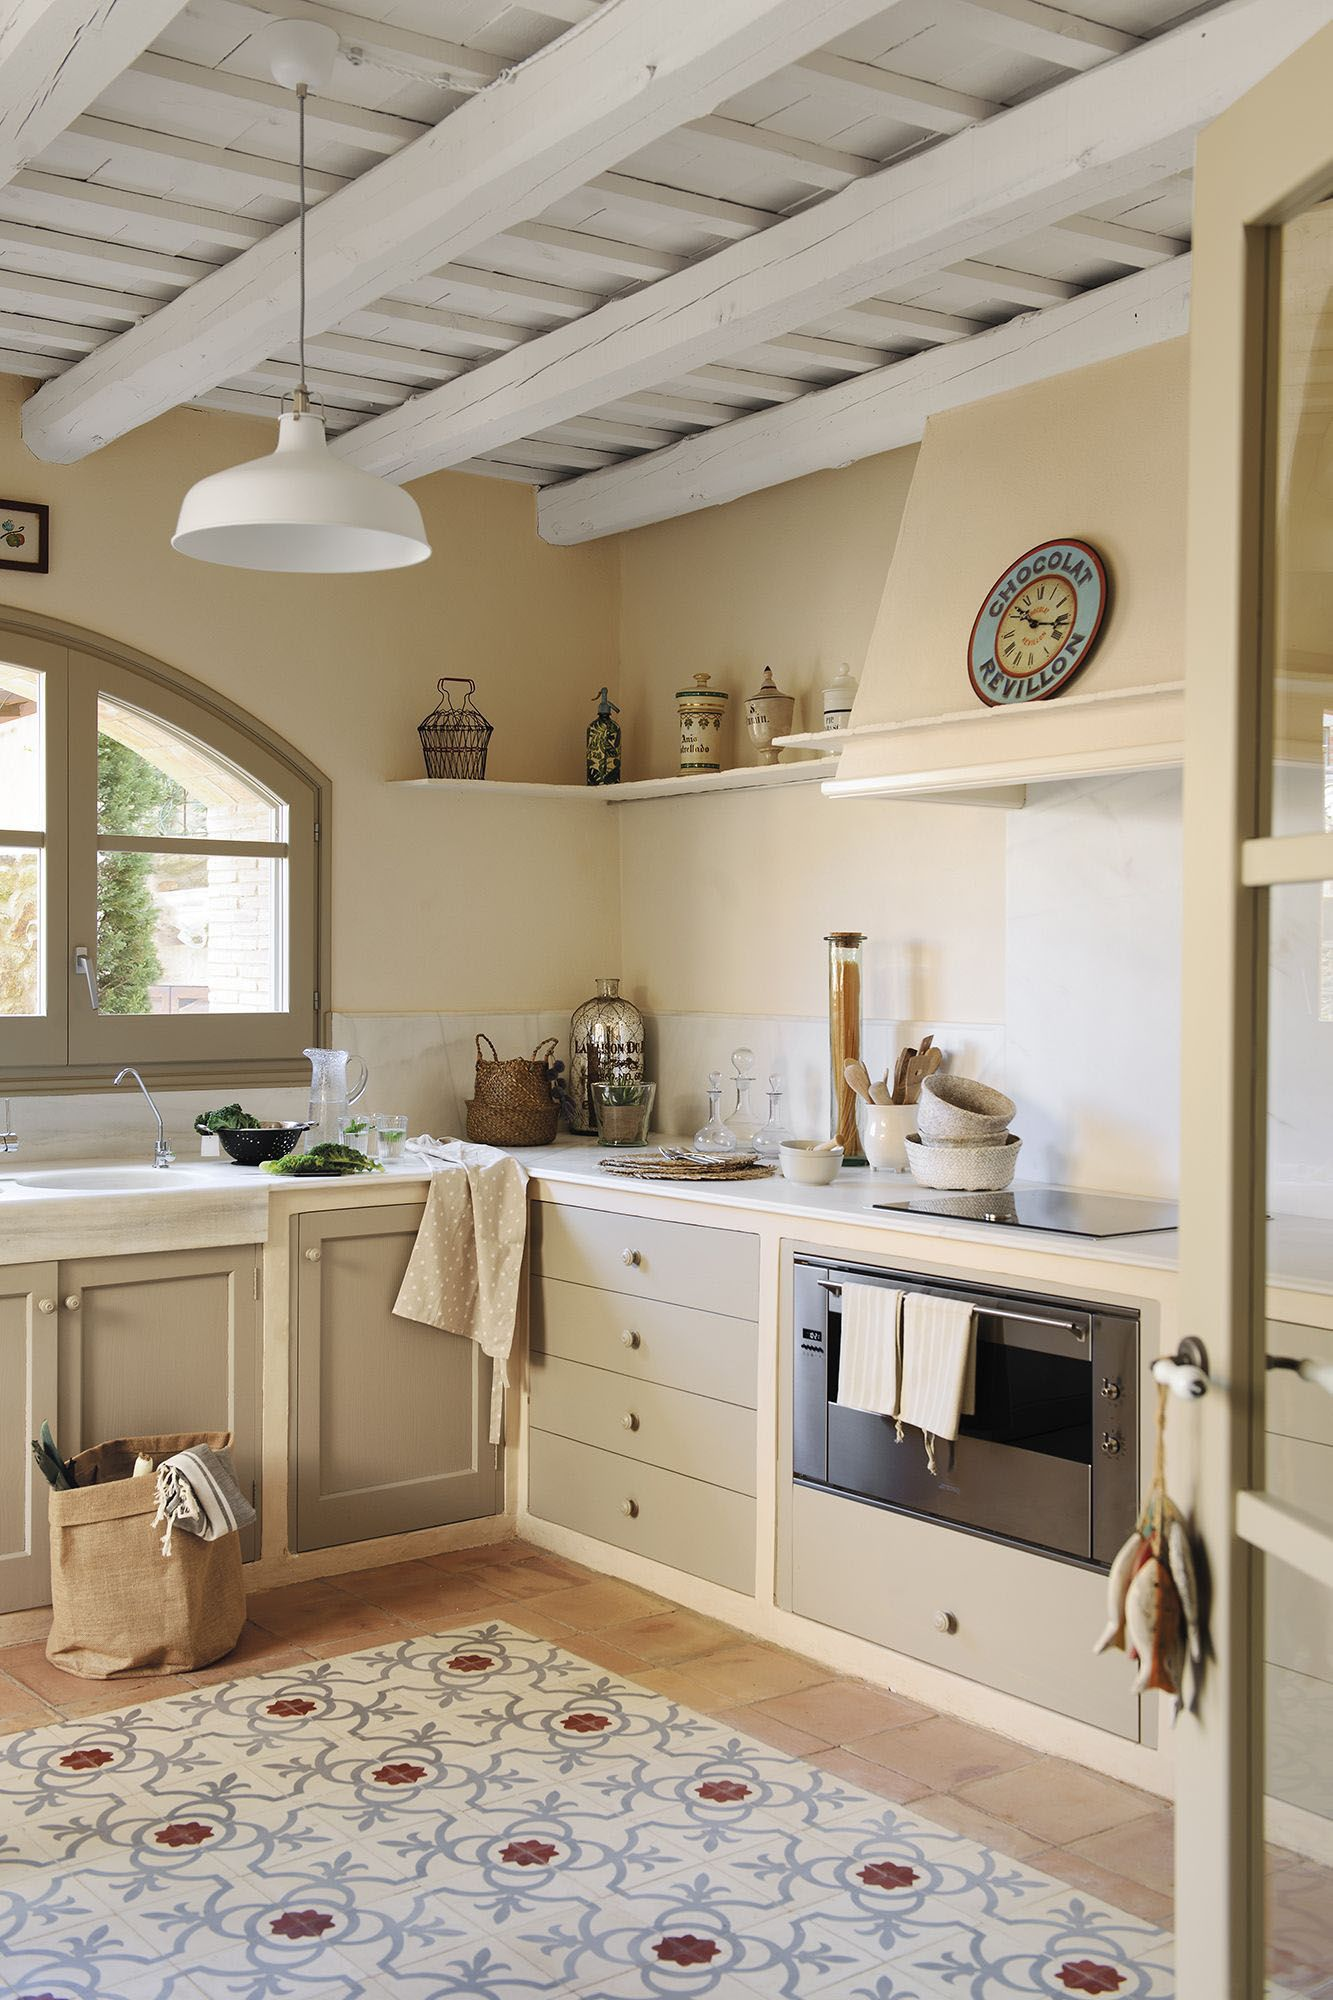 20 Nation cooking area ideas as well as concepts | Luoghi da ...